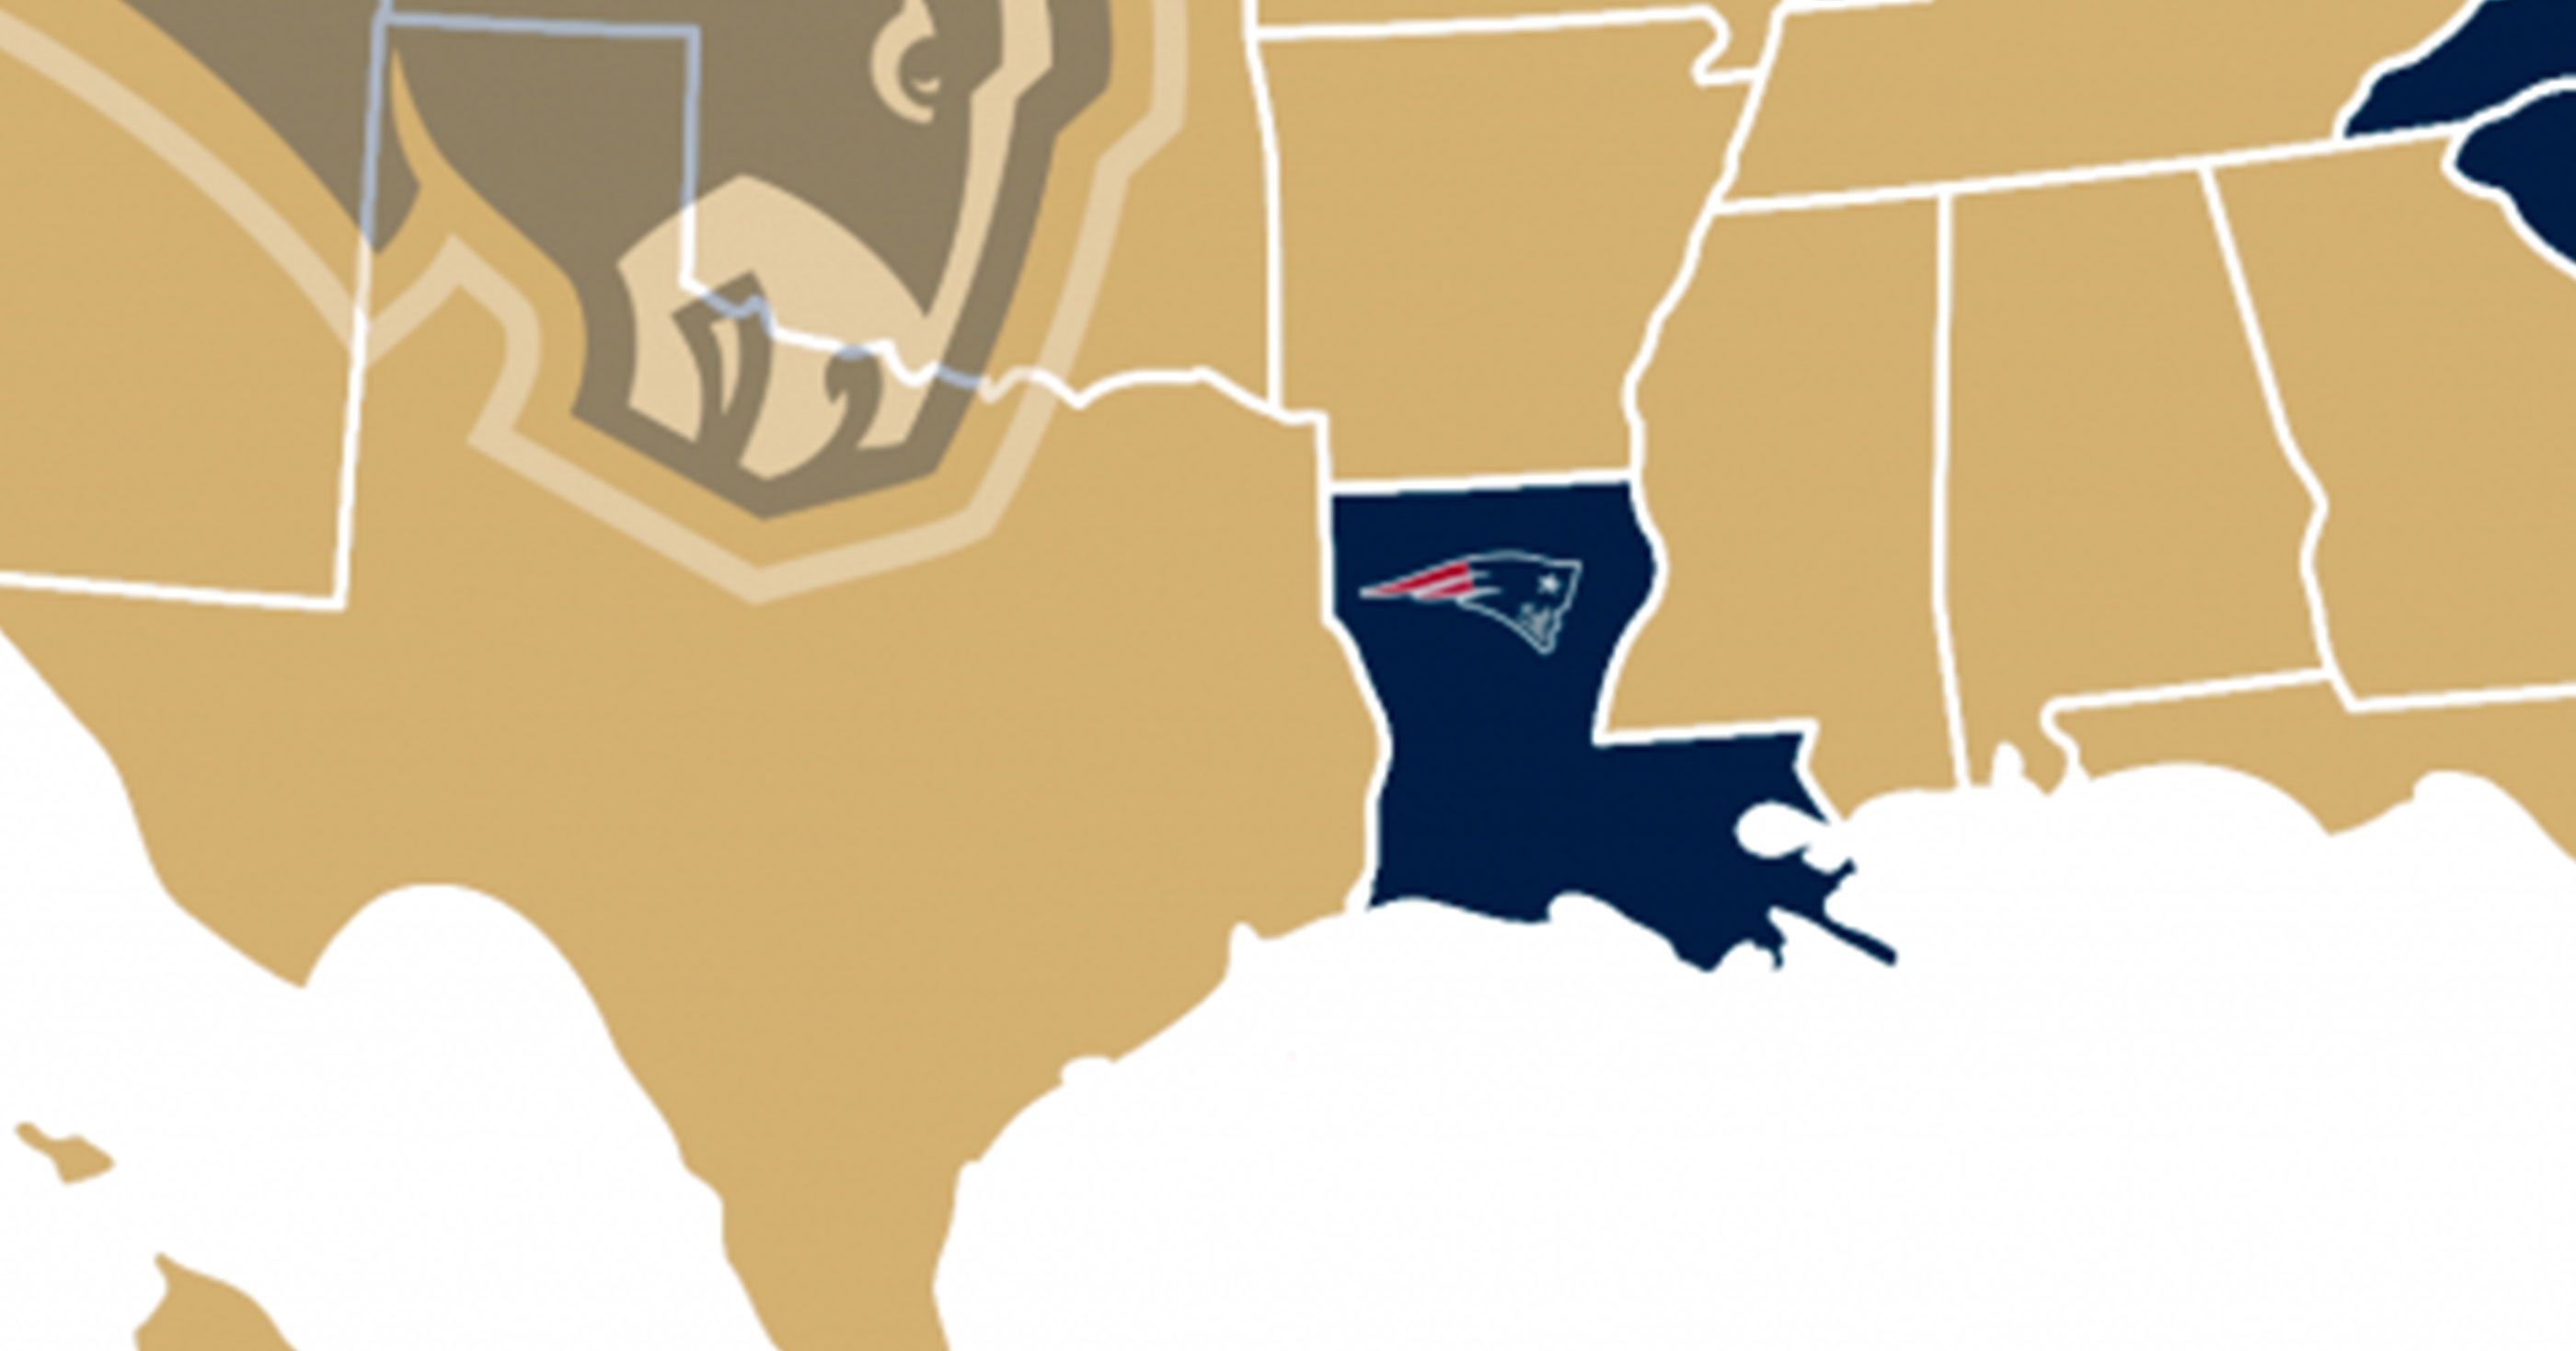 Map Shows Which Team Each State Is Rooting For In Super Bowl regarding Super Bowl 2019 Map Meme